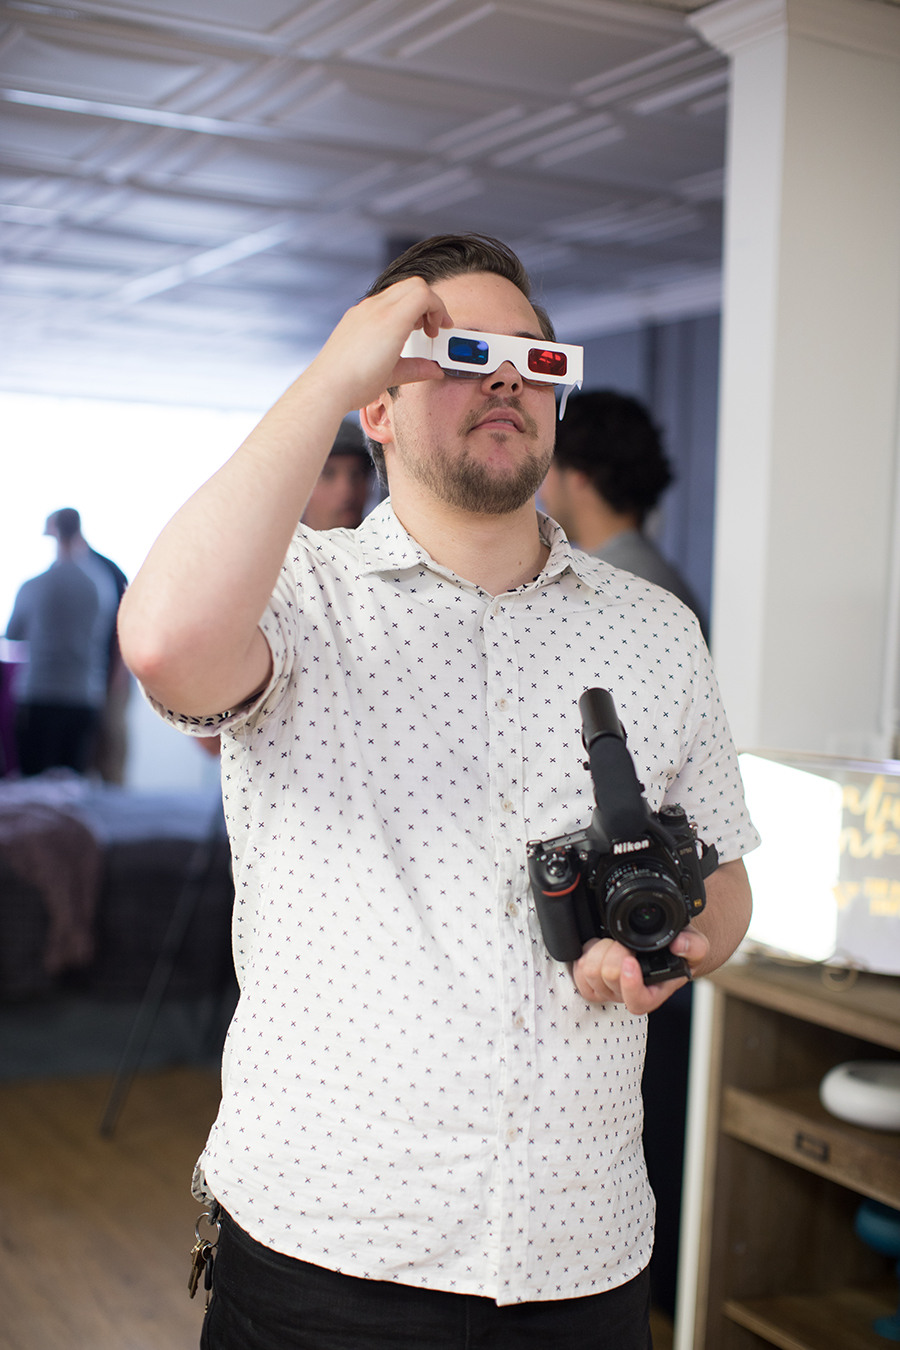 Mason Lehto Videography at Duluth Boudoir Photography Grand Opening